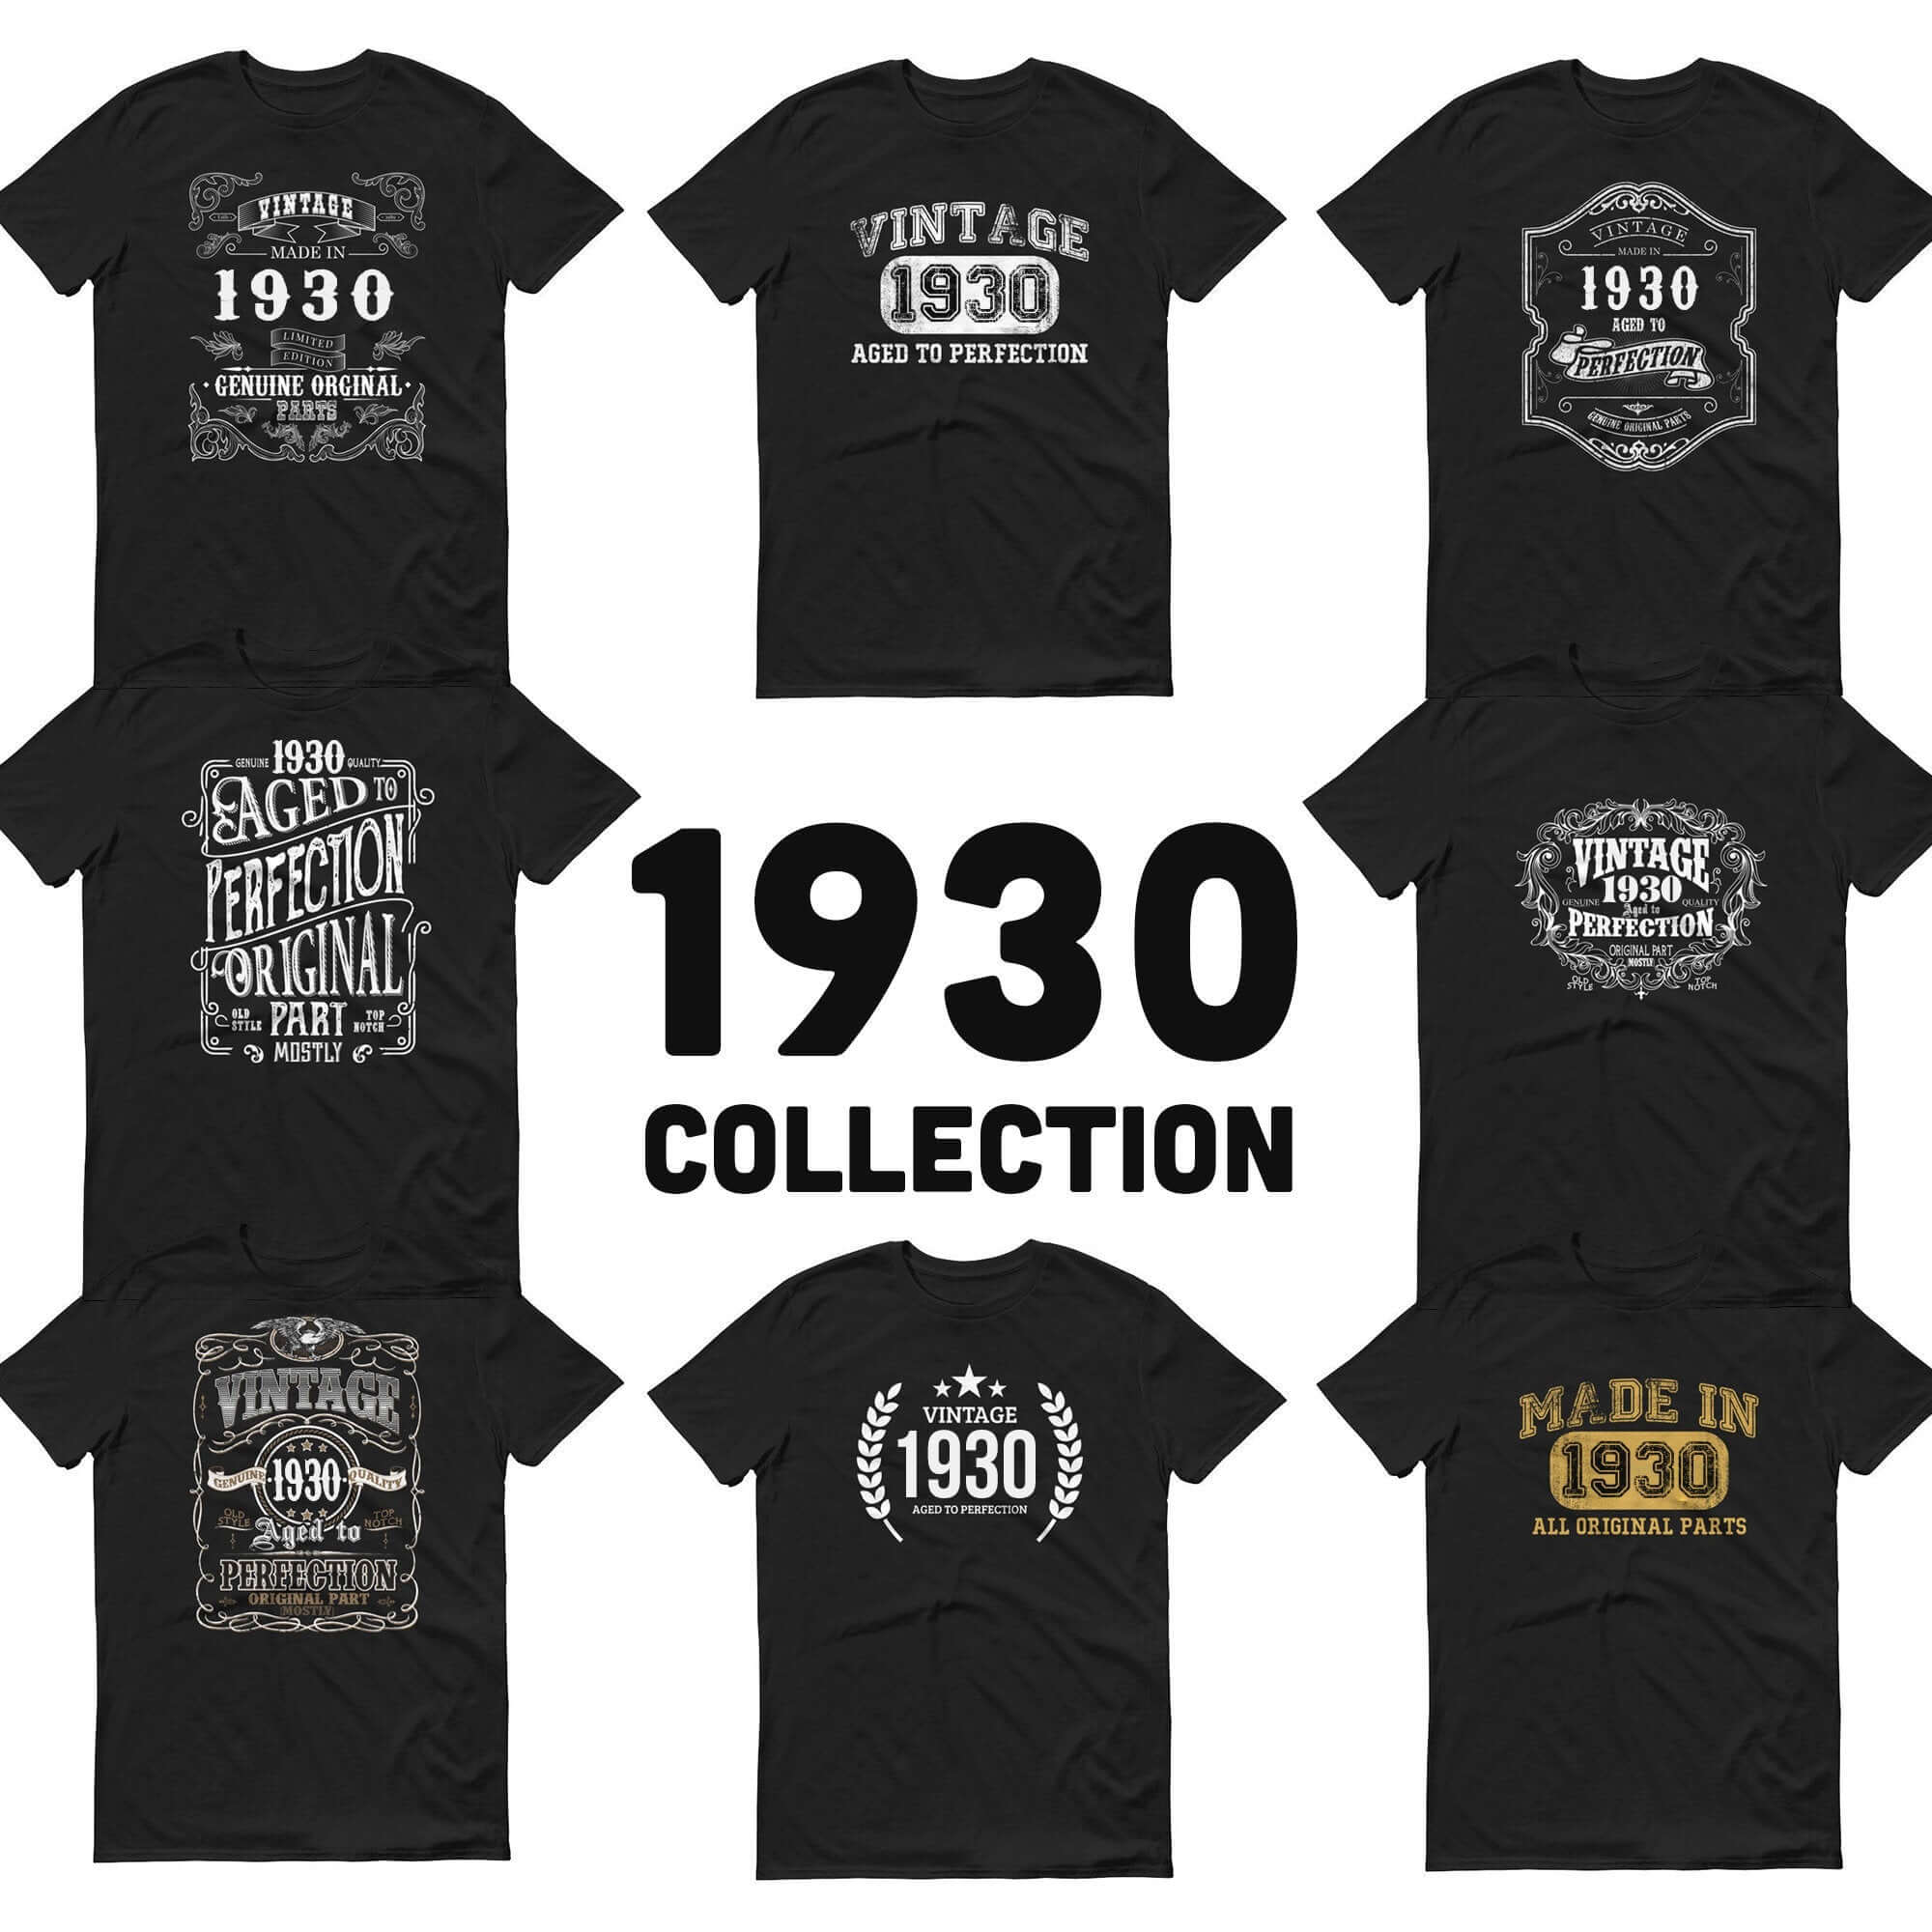 1930 Birthday Gift, Vintage Born in 1930 Unisex t-shirt 90th Birthday Made in 1930  T-shirt, 90 Year Old Birthday Shirt 1930 Collection tee Size: S, M, L, XL, 2X, 3XDesign: #1, #2, #3, #4, #5, #6, #7, #8Color: Black